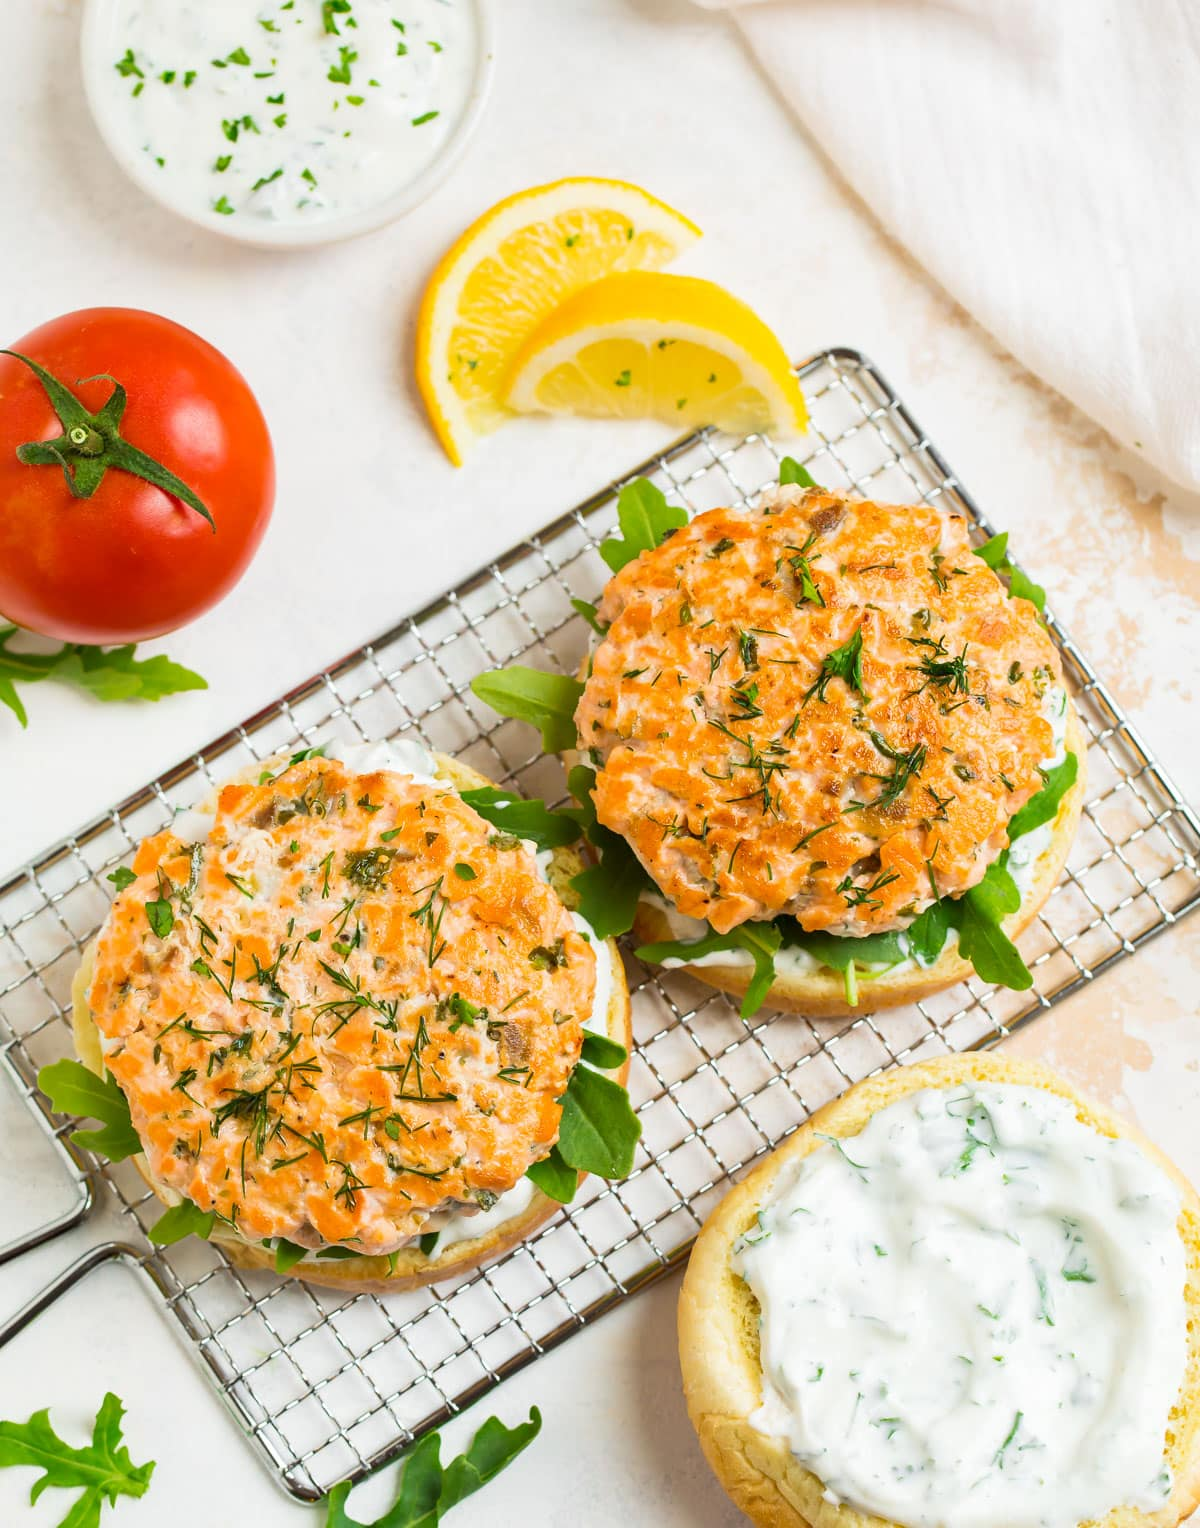 Two salmon burgers on buns with sauce